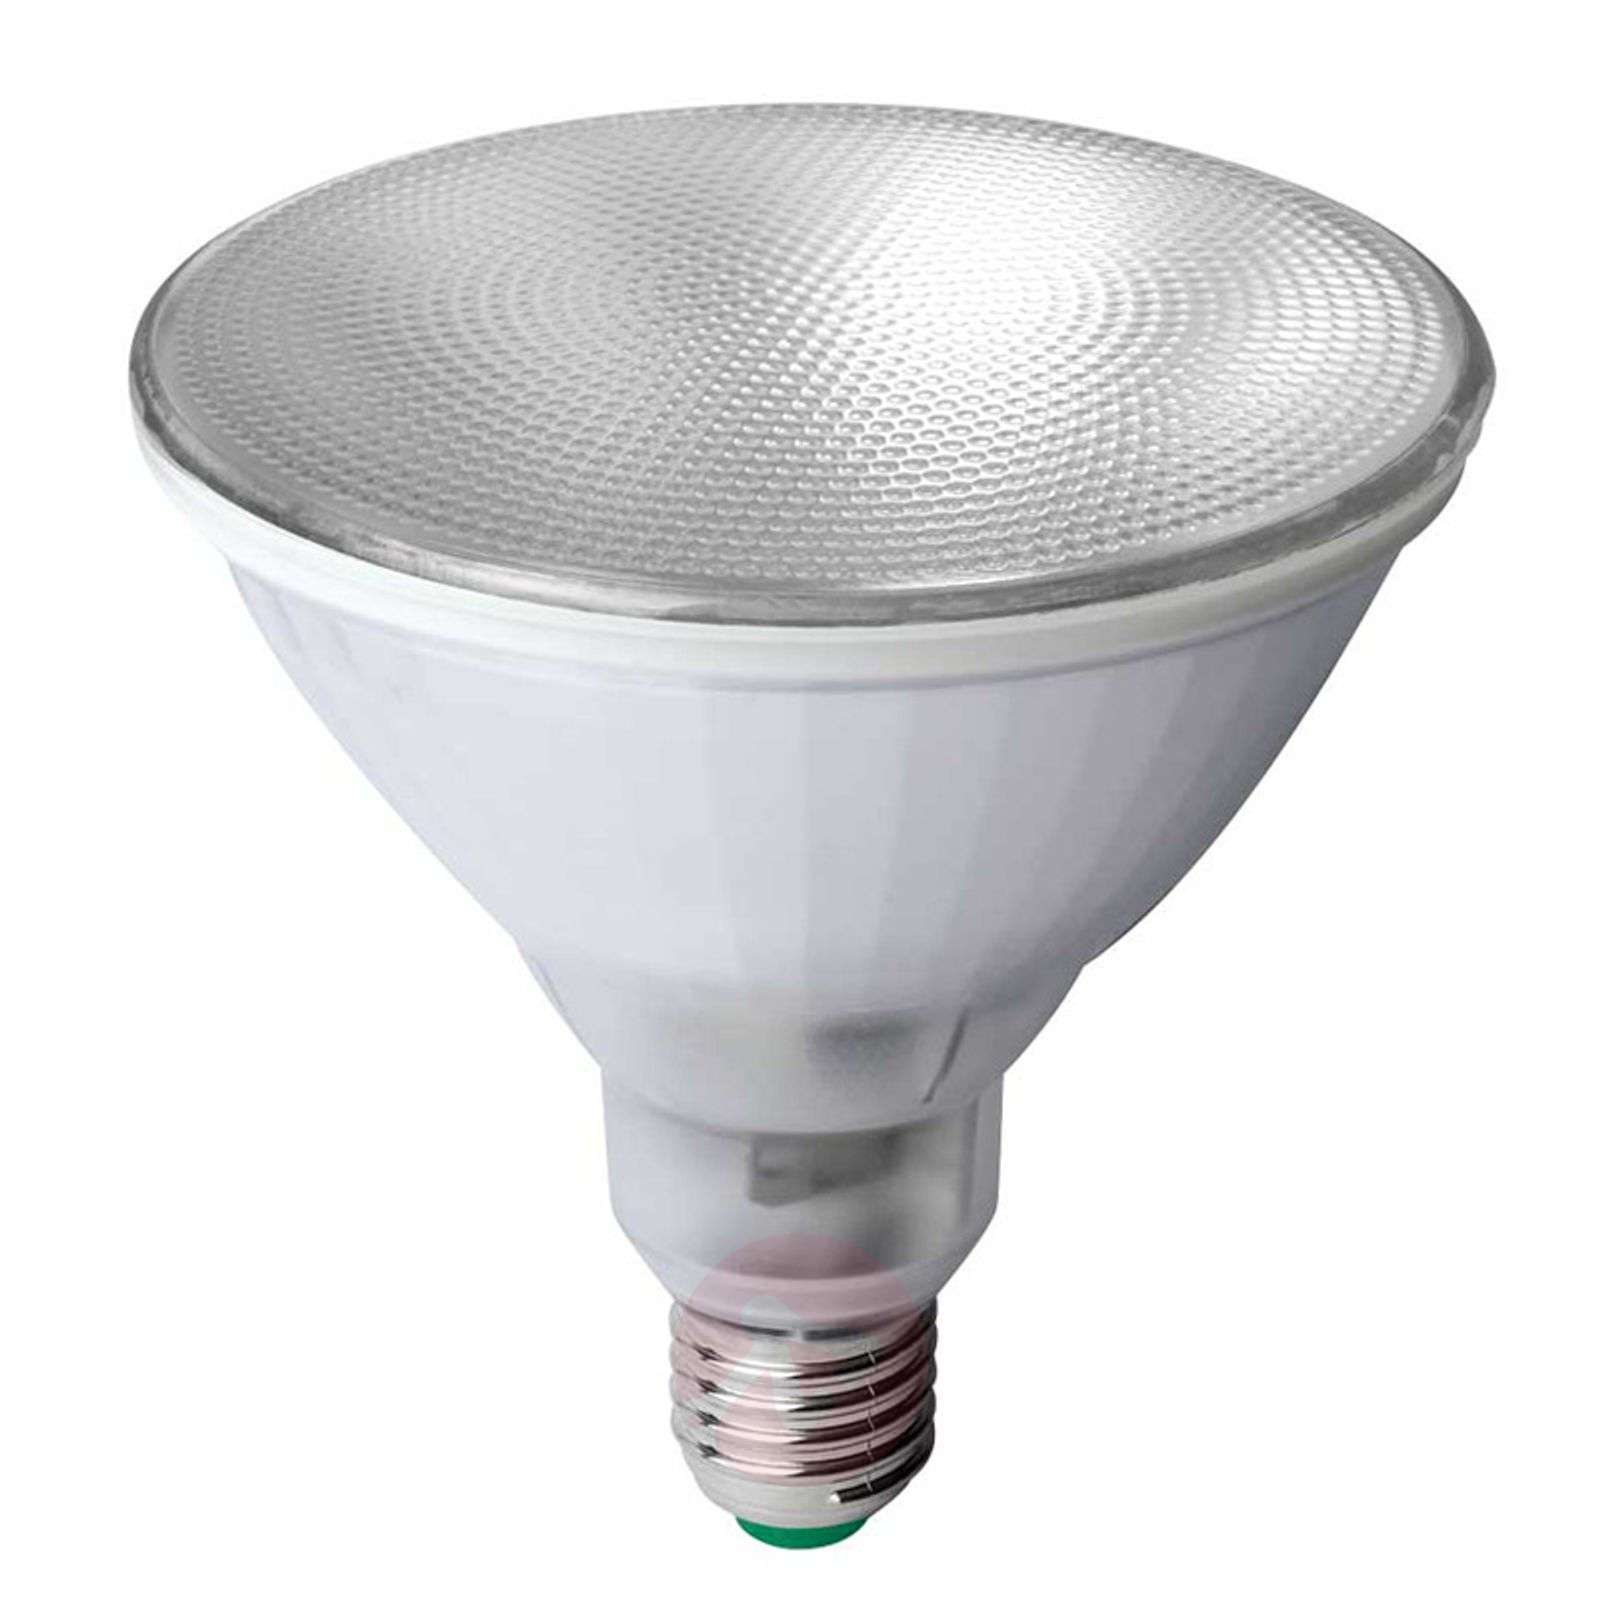 LED à réflecteur E27 15,5W PAR38 35degree MEGAMAN-6530188-01